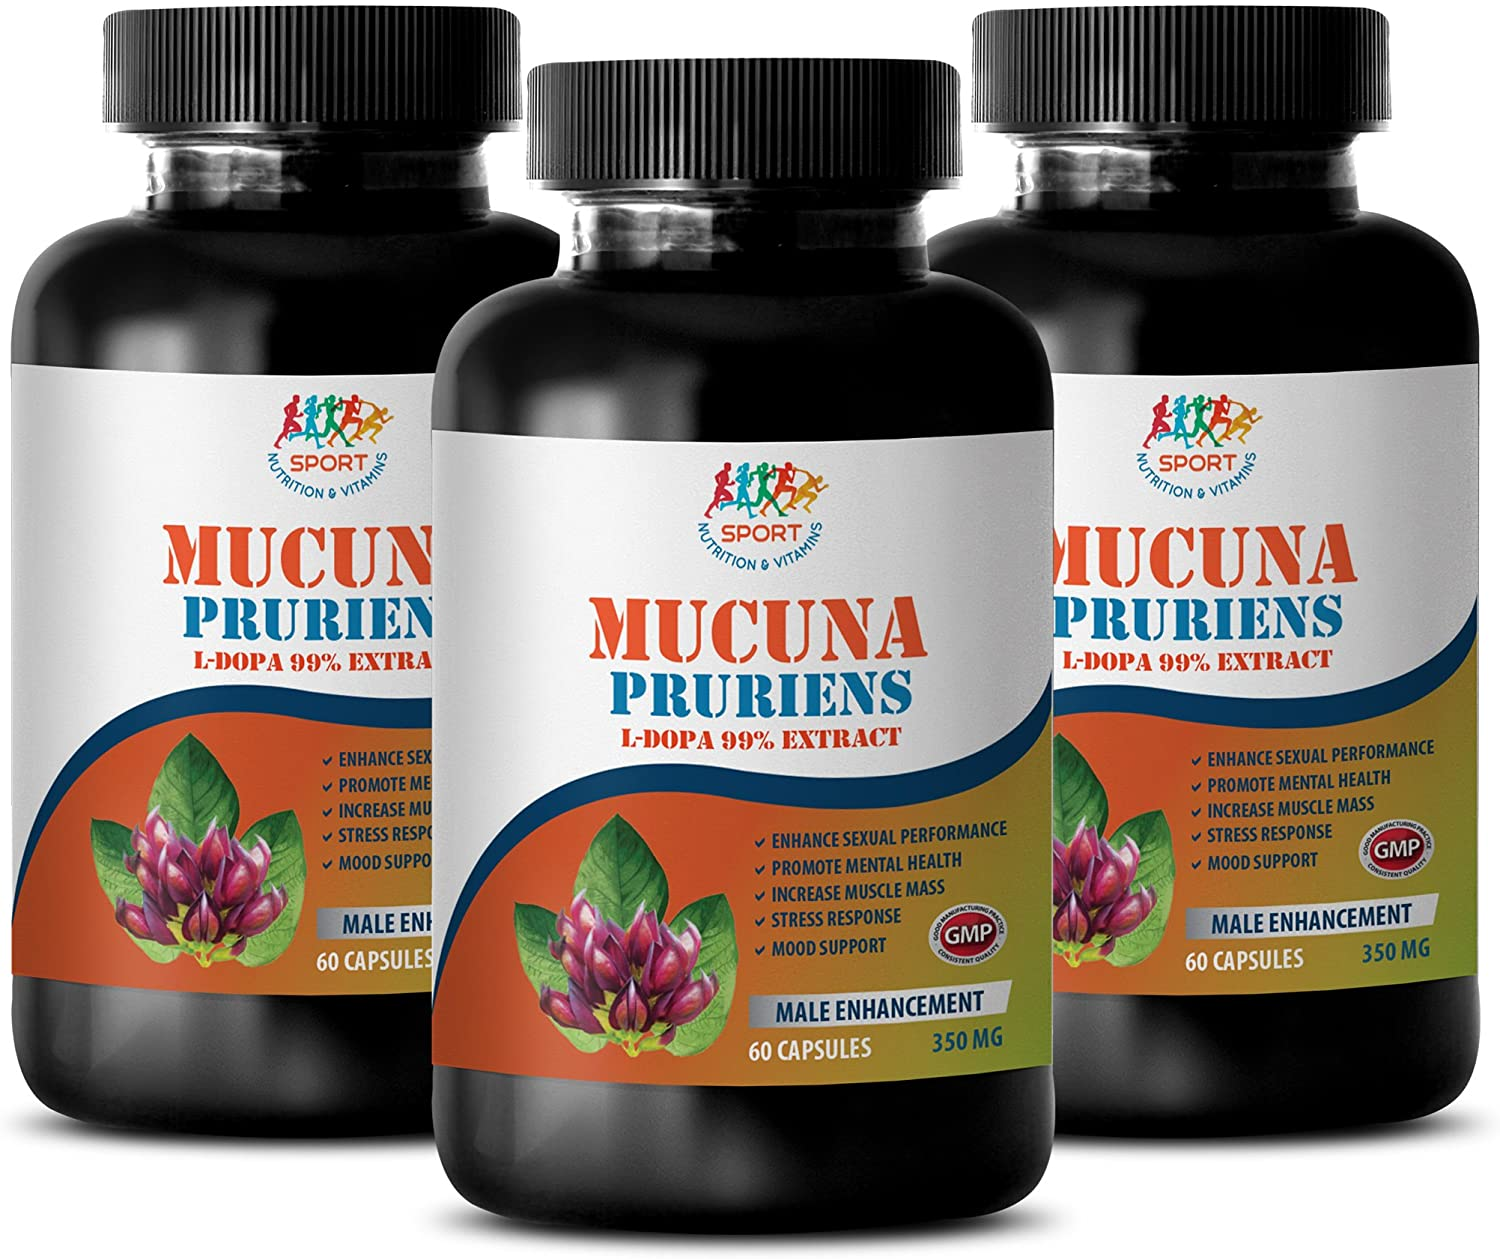 libido Natural Enhancer for Women - MUCUNA PRURIENS 99% Extract 350MG - Stress Relief - Mood and LIBIDO Booster - Natural - mucuna pruriens Powder - 3 Bottles (180 Capsules)